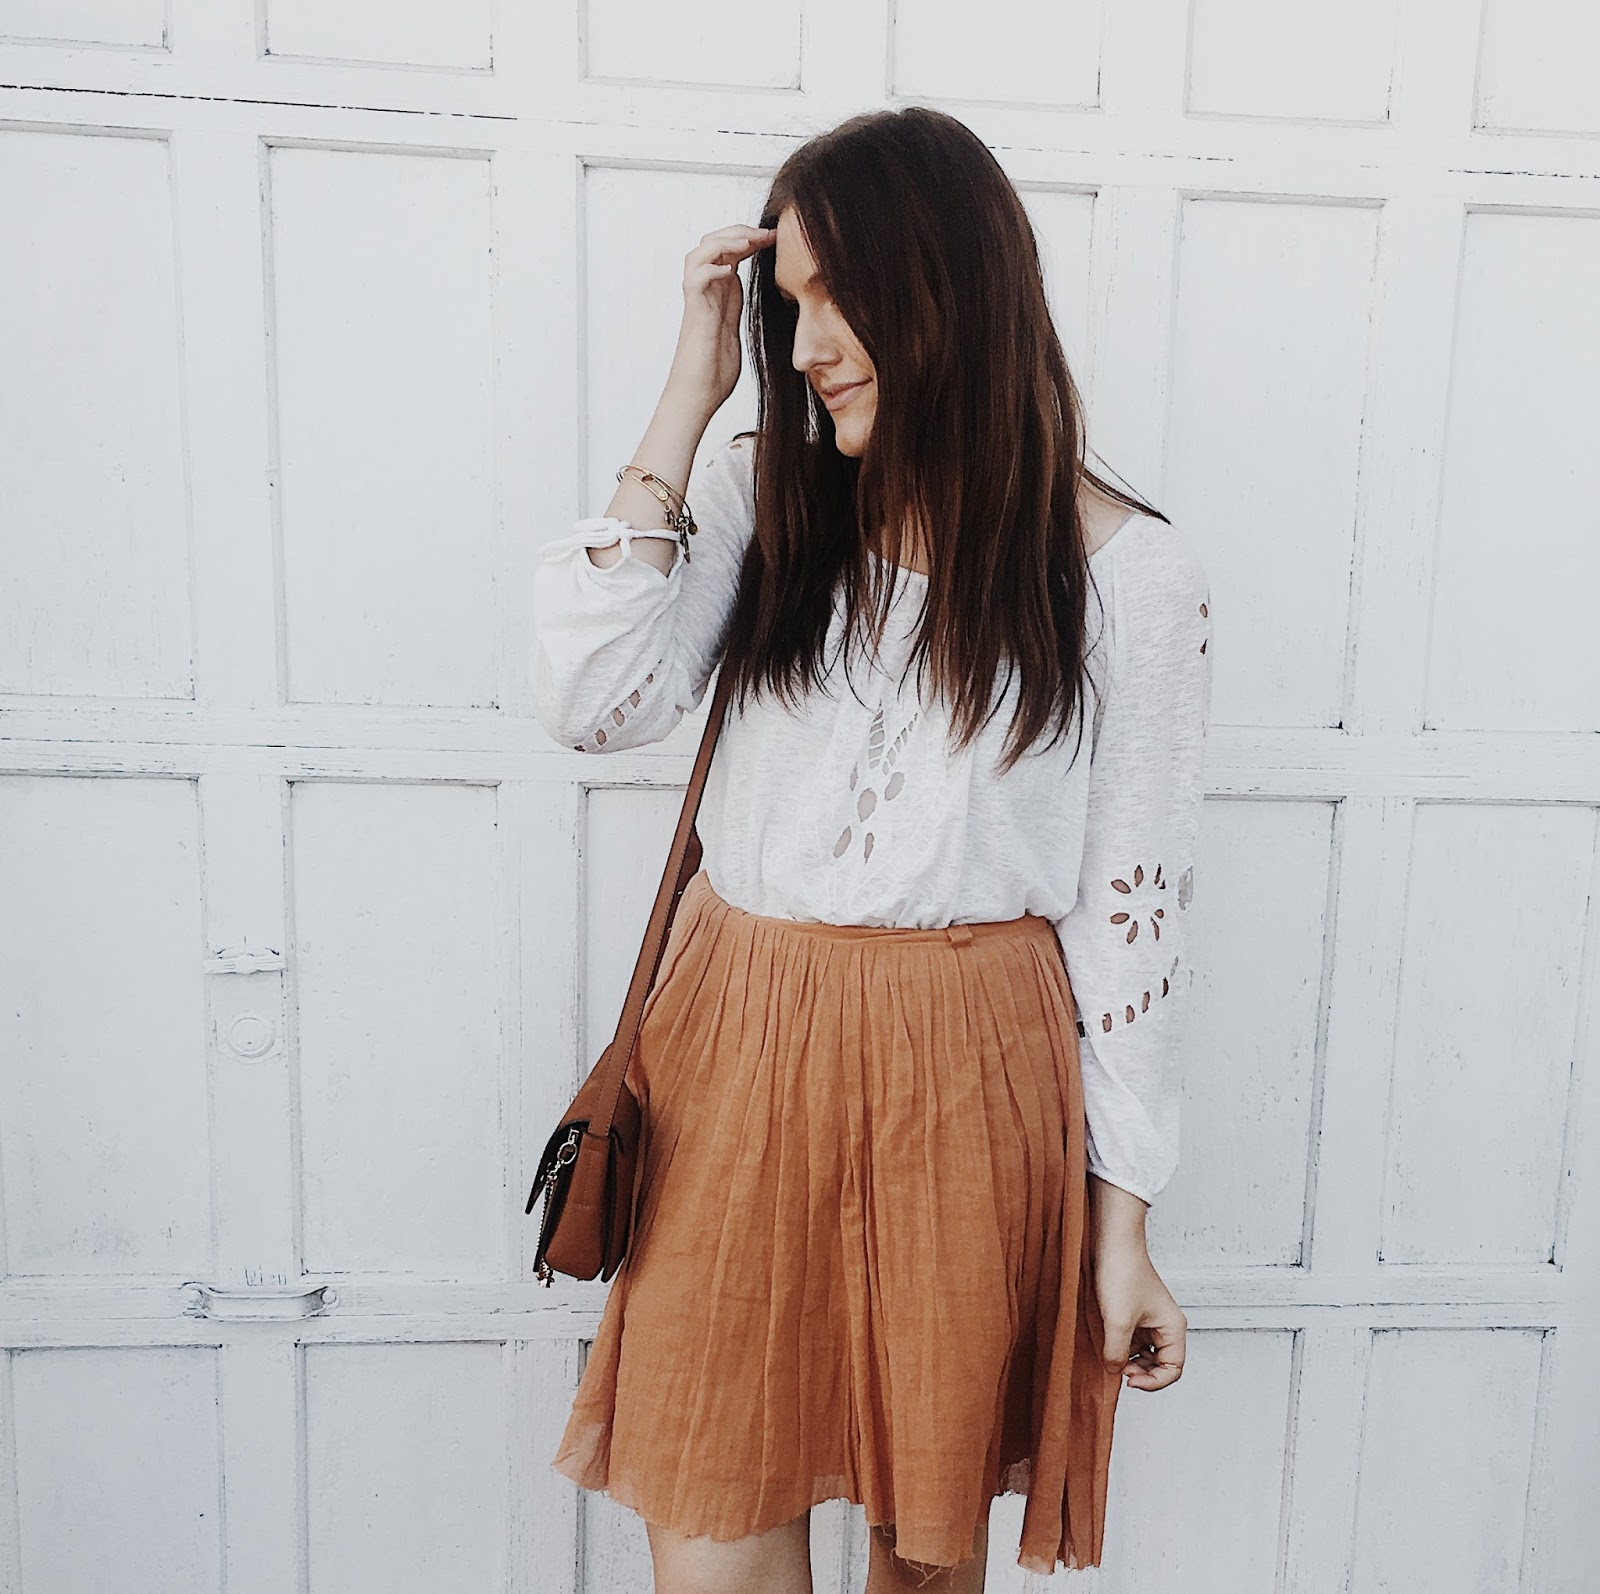 sabo skirt outfit